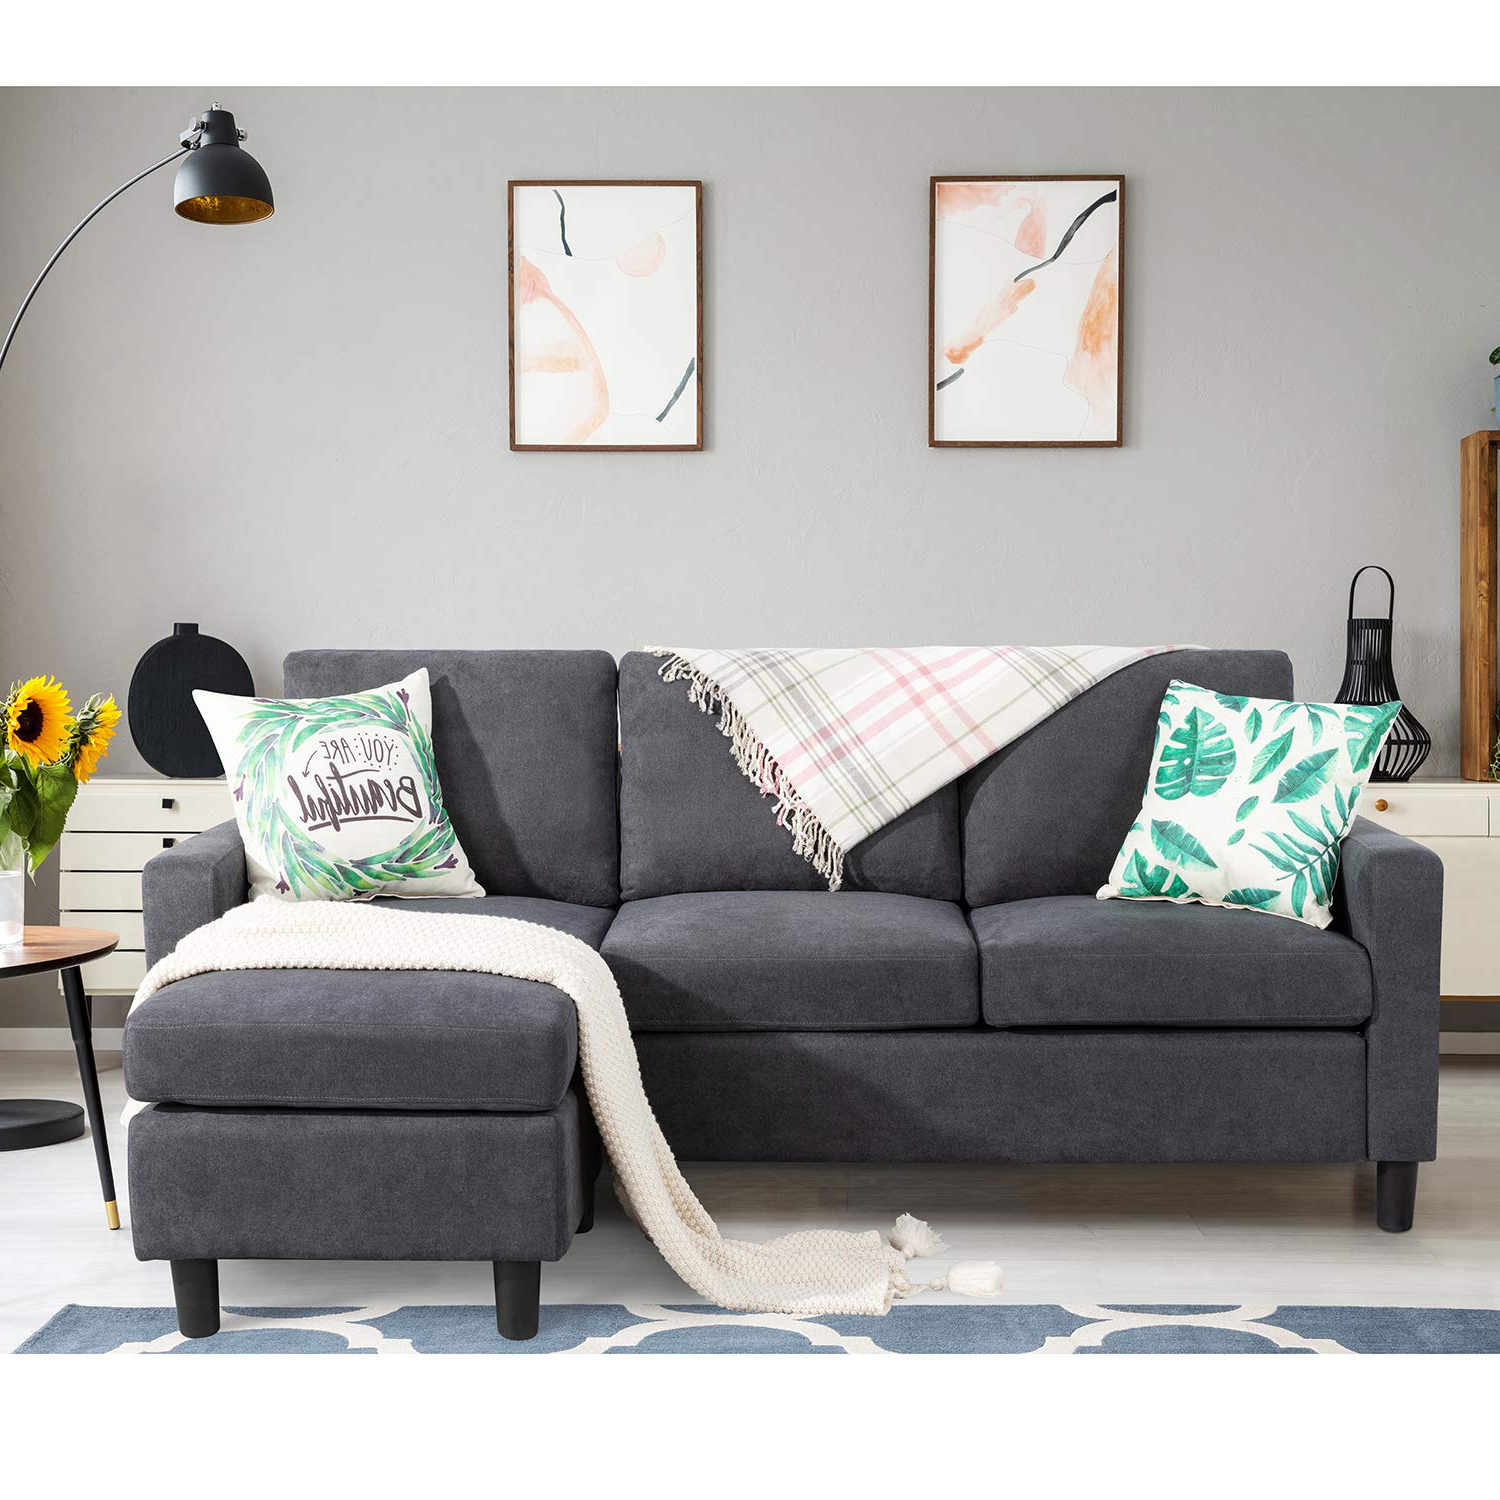 Bowery Hill Steel Gray Linen Reversible/Sectional Sleeper With Regard To Current Palisades Reversible Small Space Sectional Sofas With Storage (View 7 of 25)